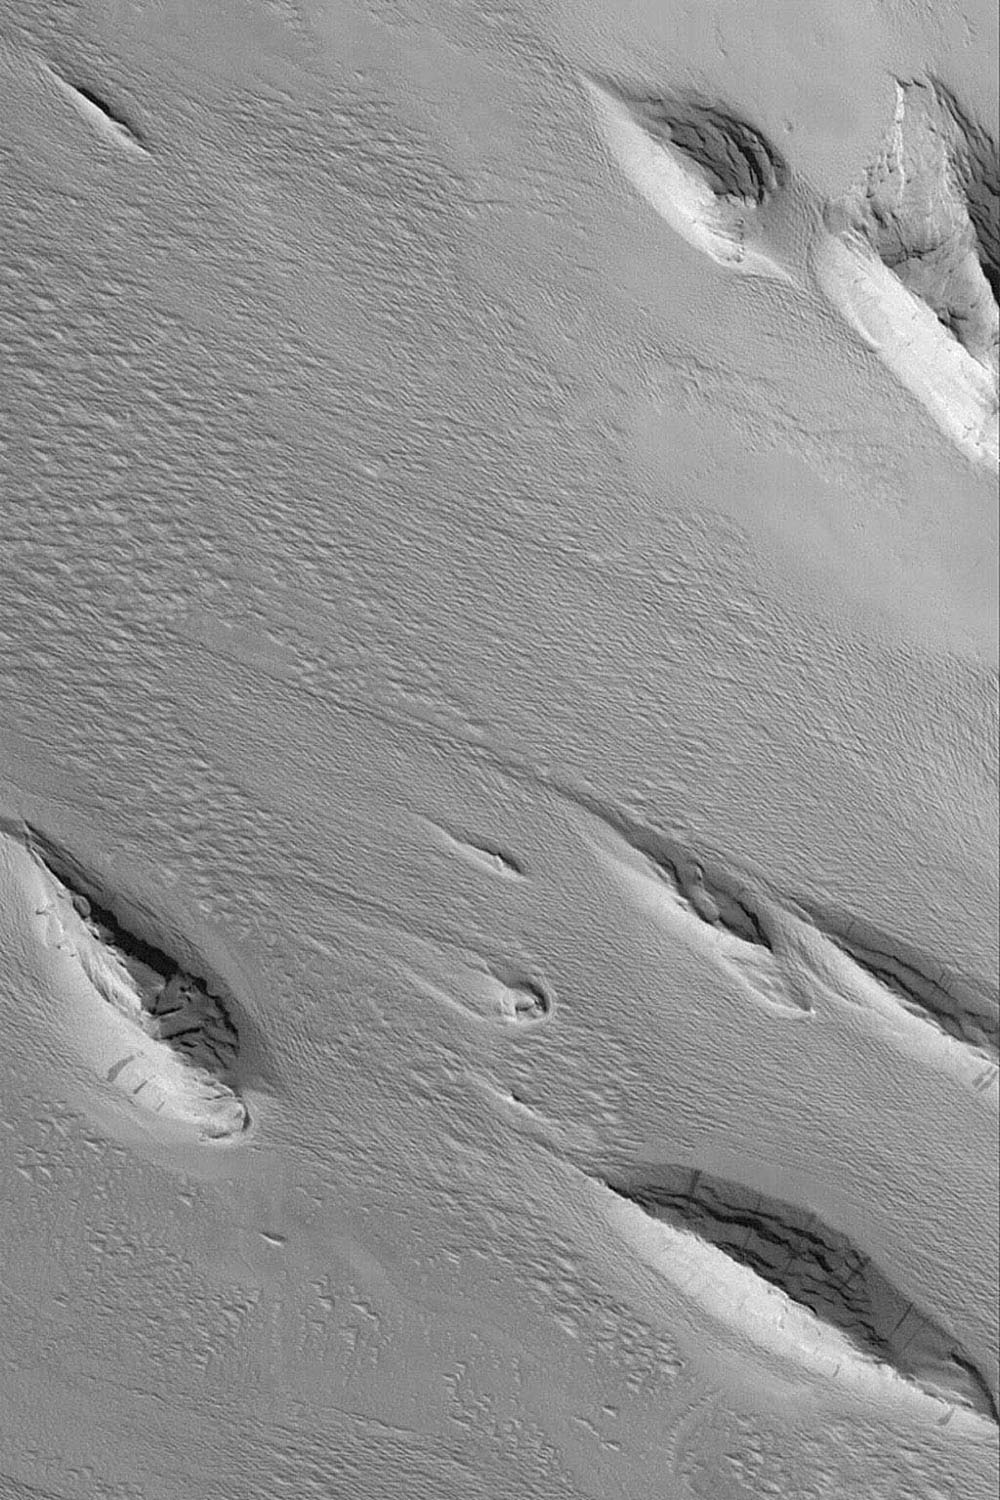 NASA's Mars Global Surveyor shows landforms found in the Medusae Sulci region of Mars. The most classic yardang shape is that of the inverted boat hull.